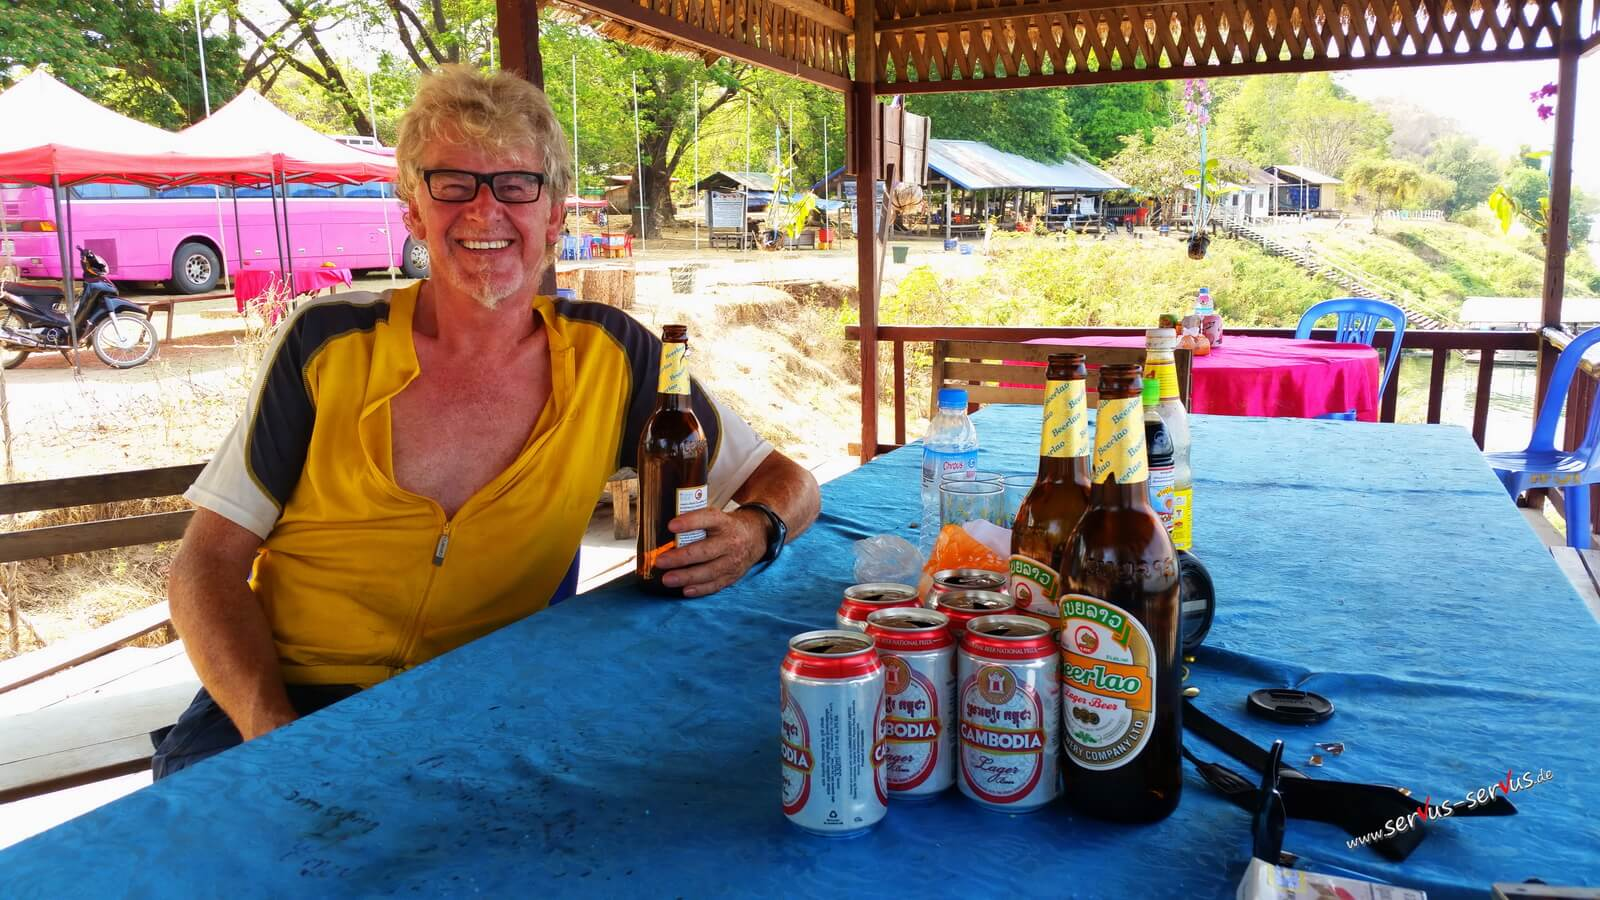 Biertrinken aud Don Det, Laos